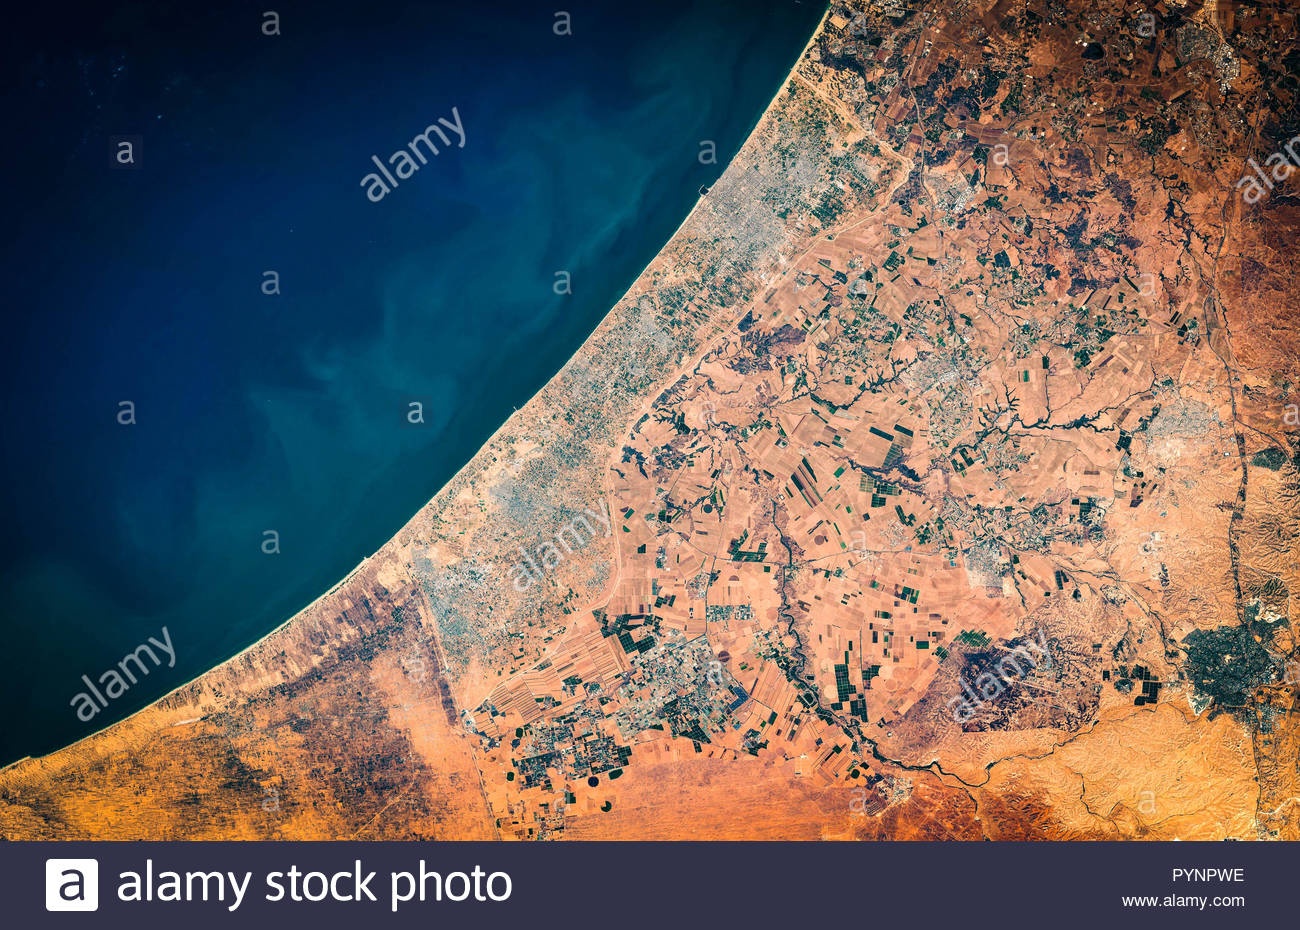 High resolution satellite image of Gaza Strip and Gaza city from above, aerial view, contains modified Copernicus Sentinel data [2018] - Stock Image